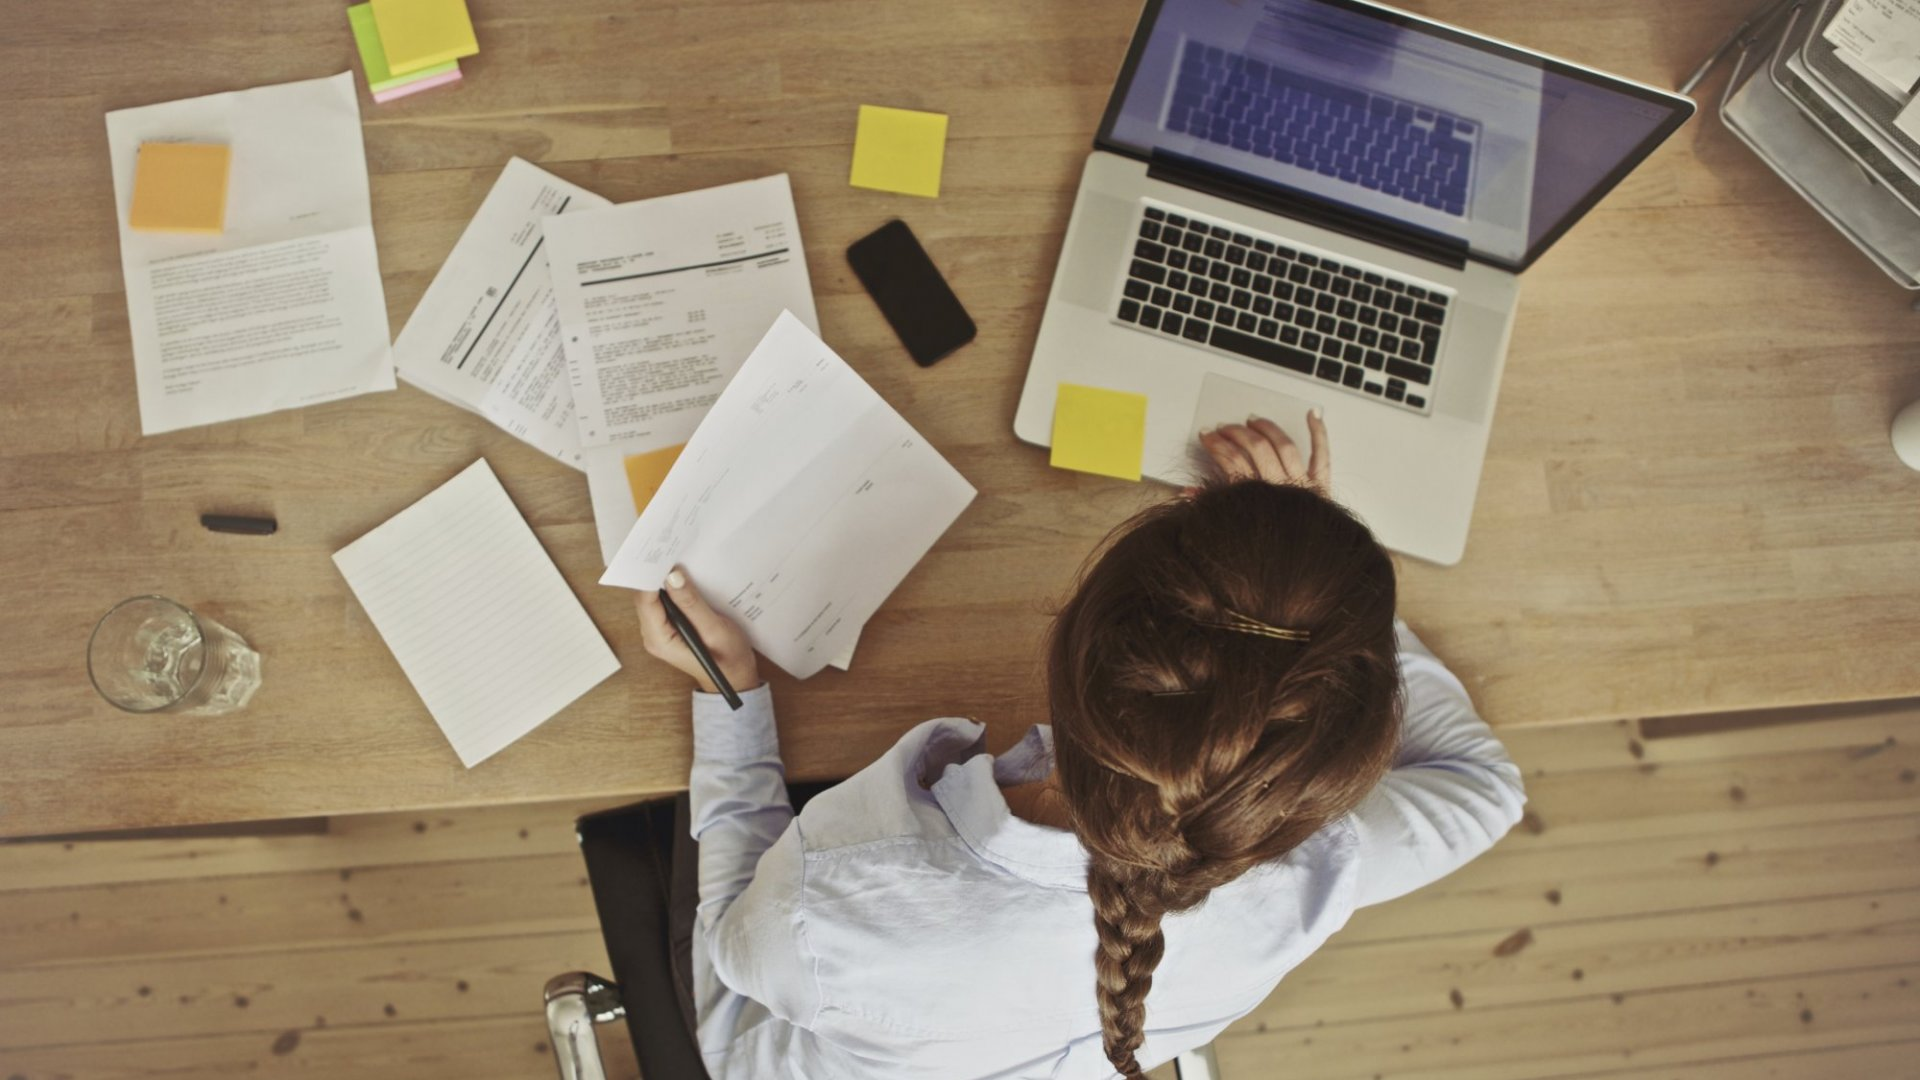 Why Flexible Working Hours Make Employees More Productive